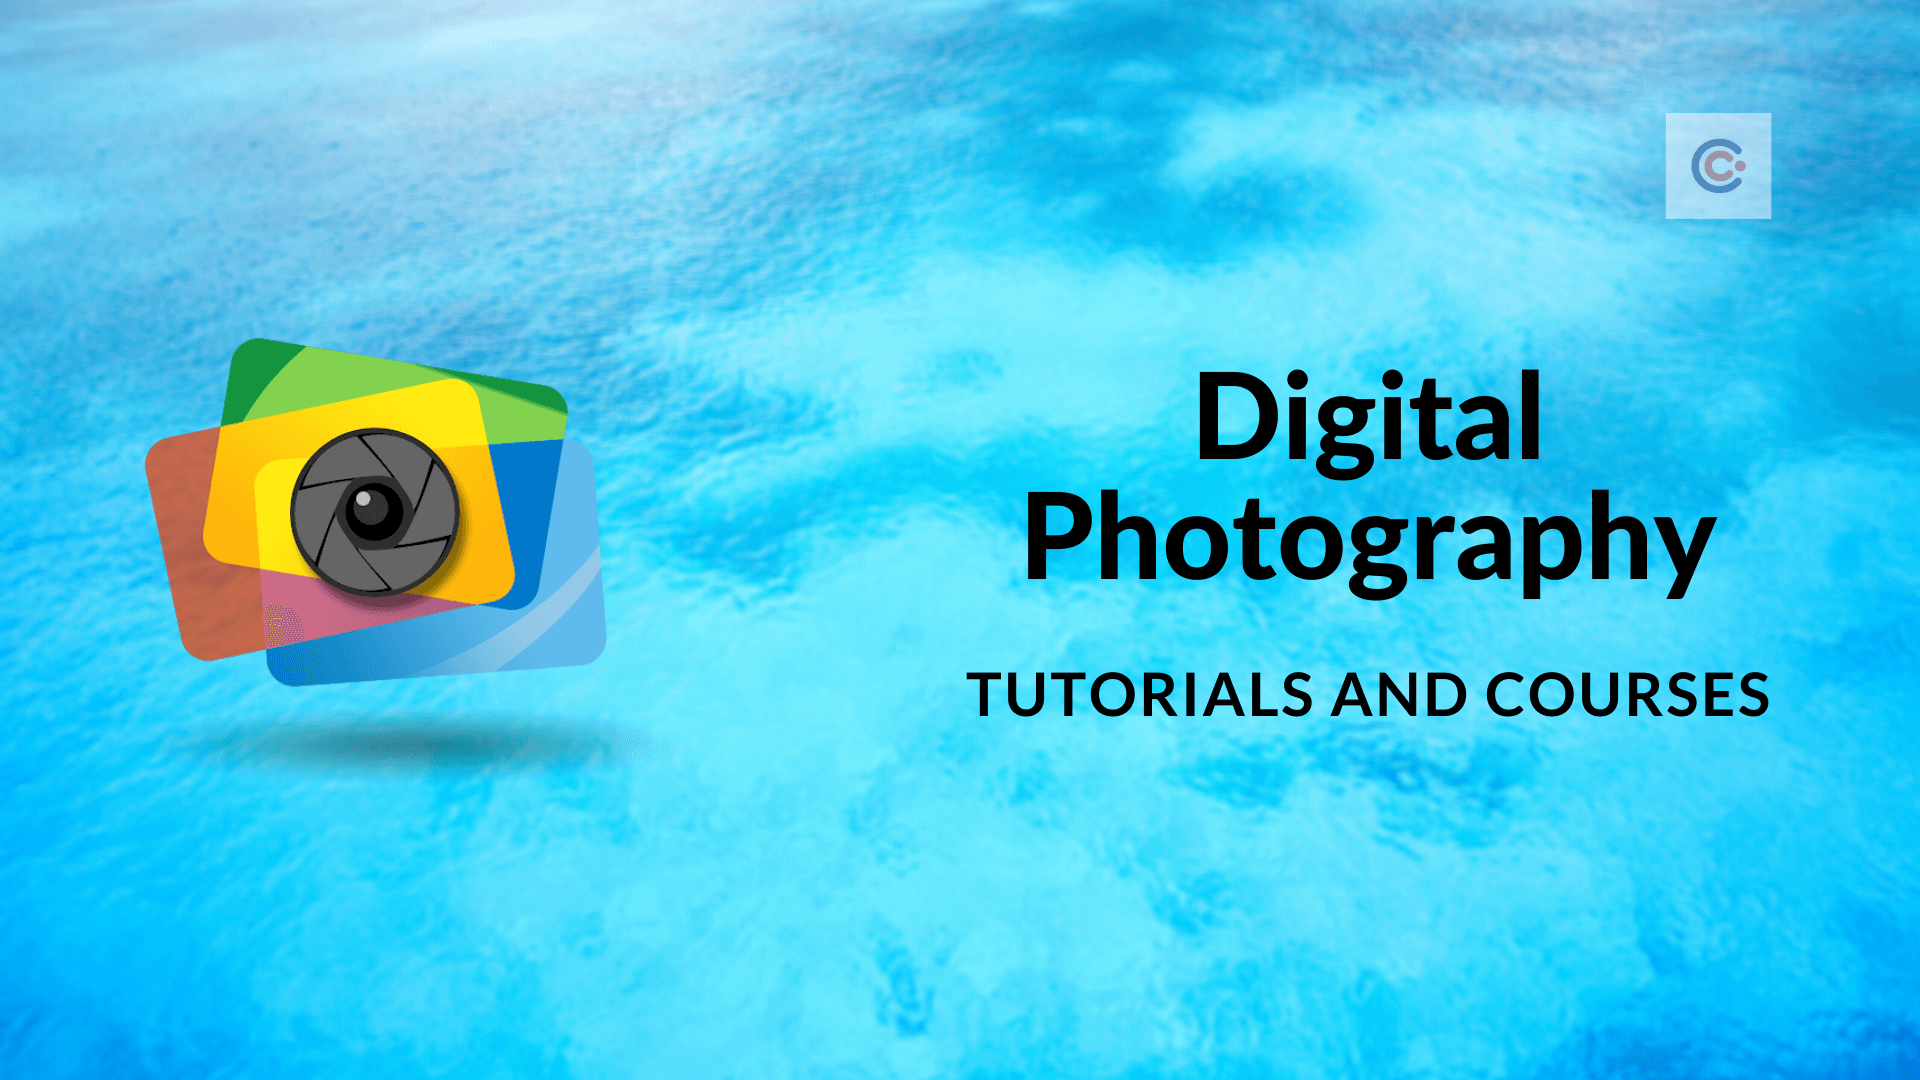 10 Best Digital Photography Classes & Courses - Learn Digital Photography Online